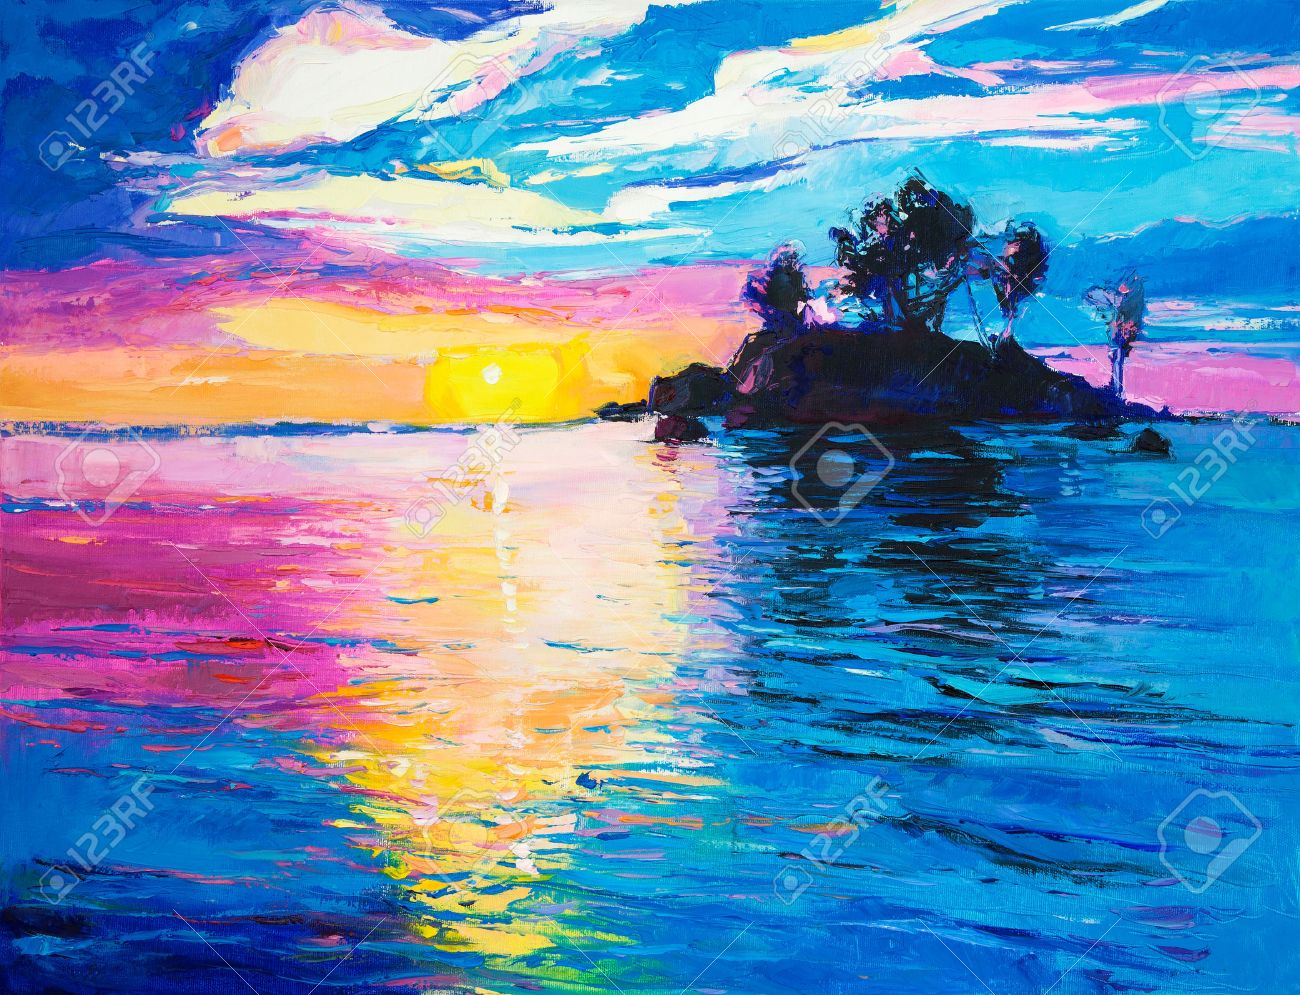 Original oil painting of lonely island and sea on canvas.Rich colorful Sunset over ocean.Modern Impressionism - 37791092